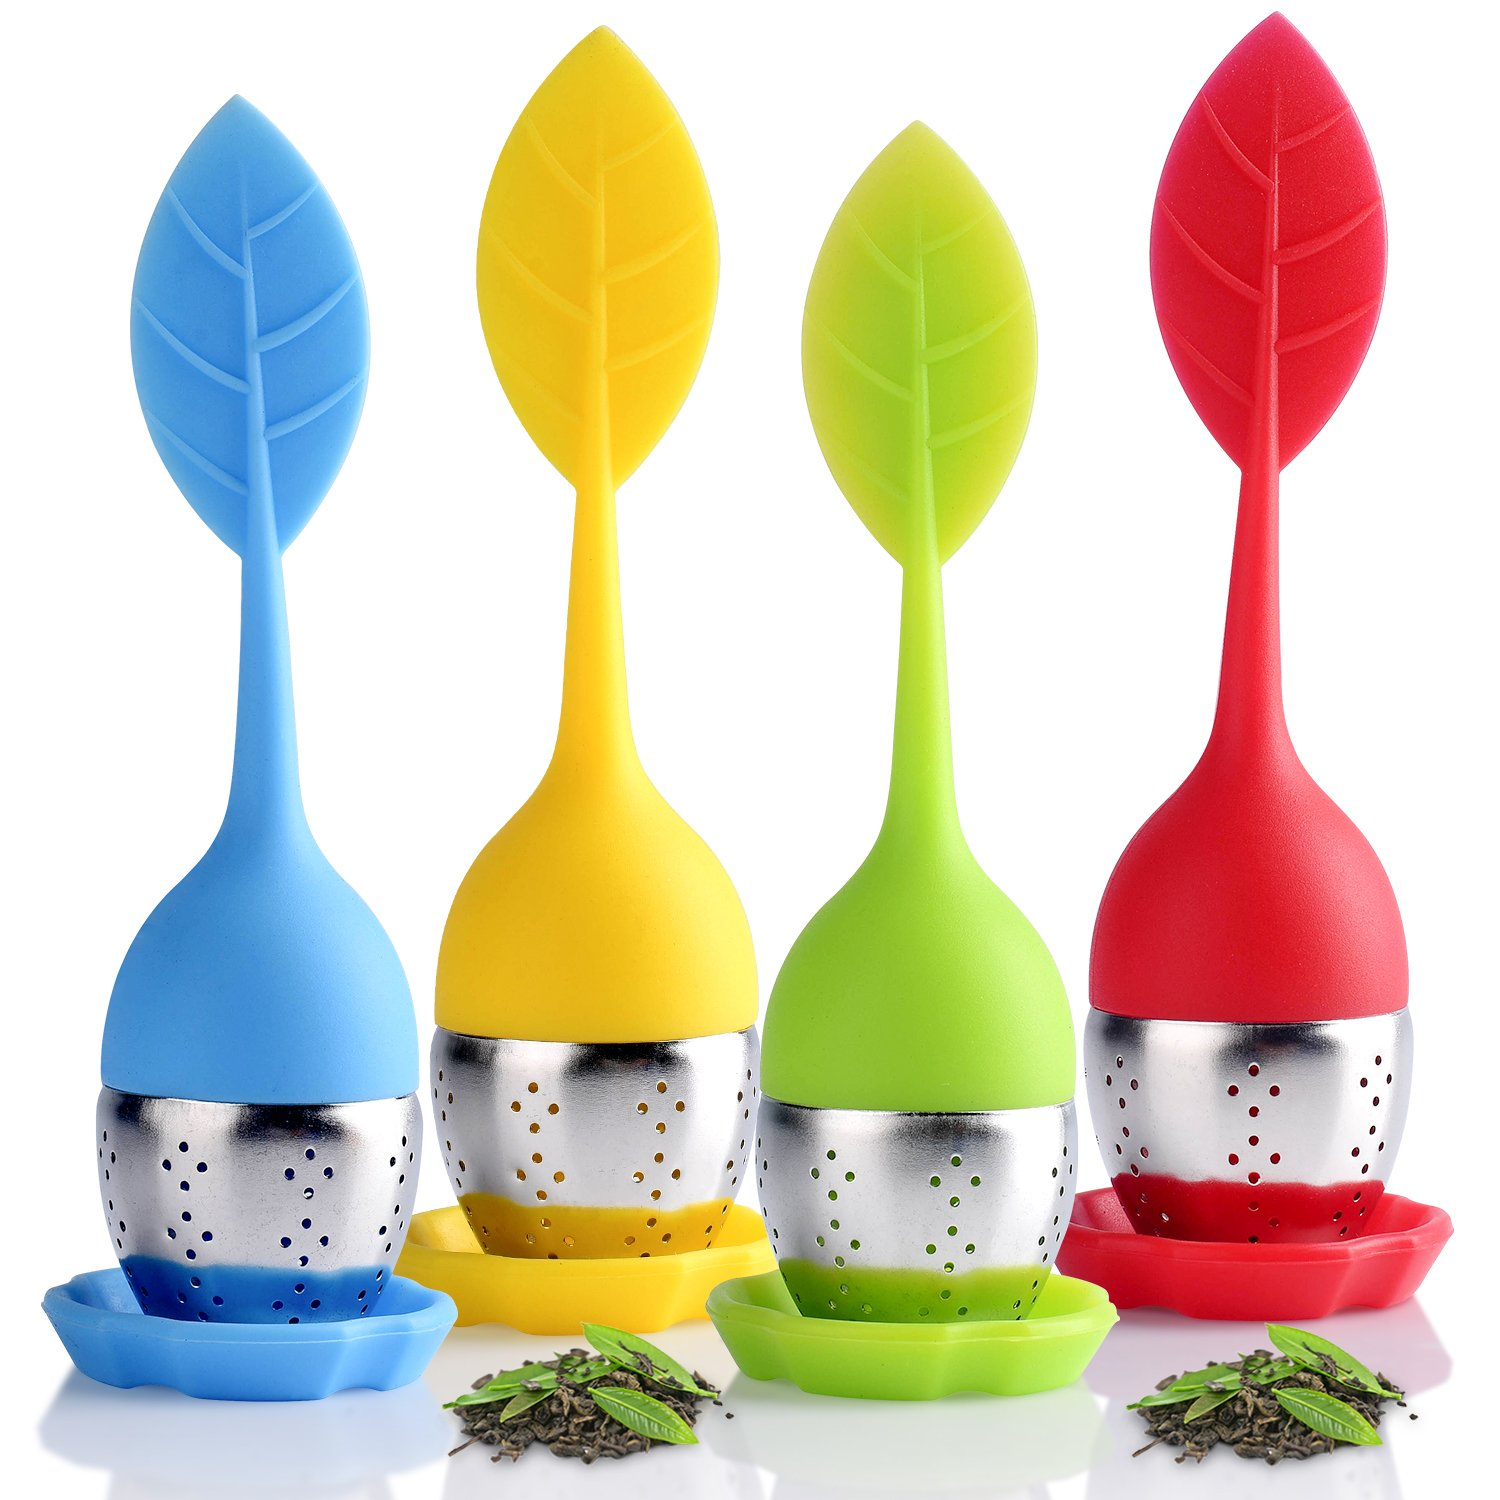 Houswill™ 4 Pack of Silicone Tea Infuser,Tea filters Loose Leaf Tea Strainers, Long-Handled, Stainless Steel with Drip Tray Perfect for Single Serve Cup ,Mug, Tea Cup,Gift Box for Friends